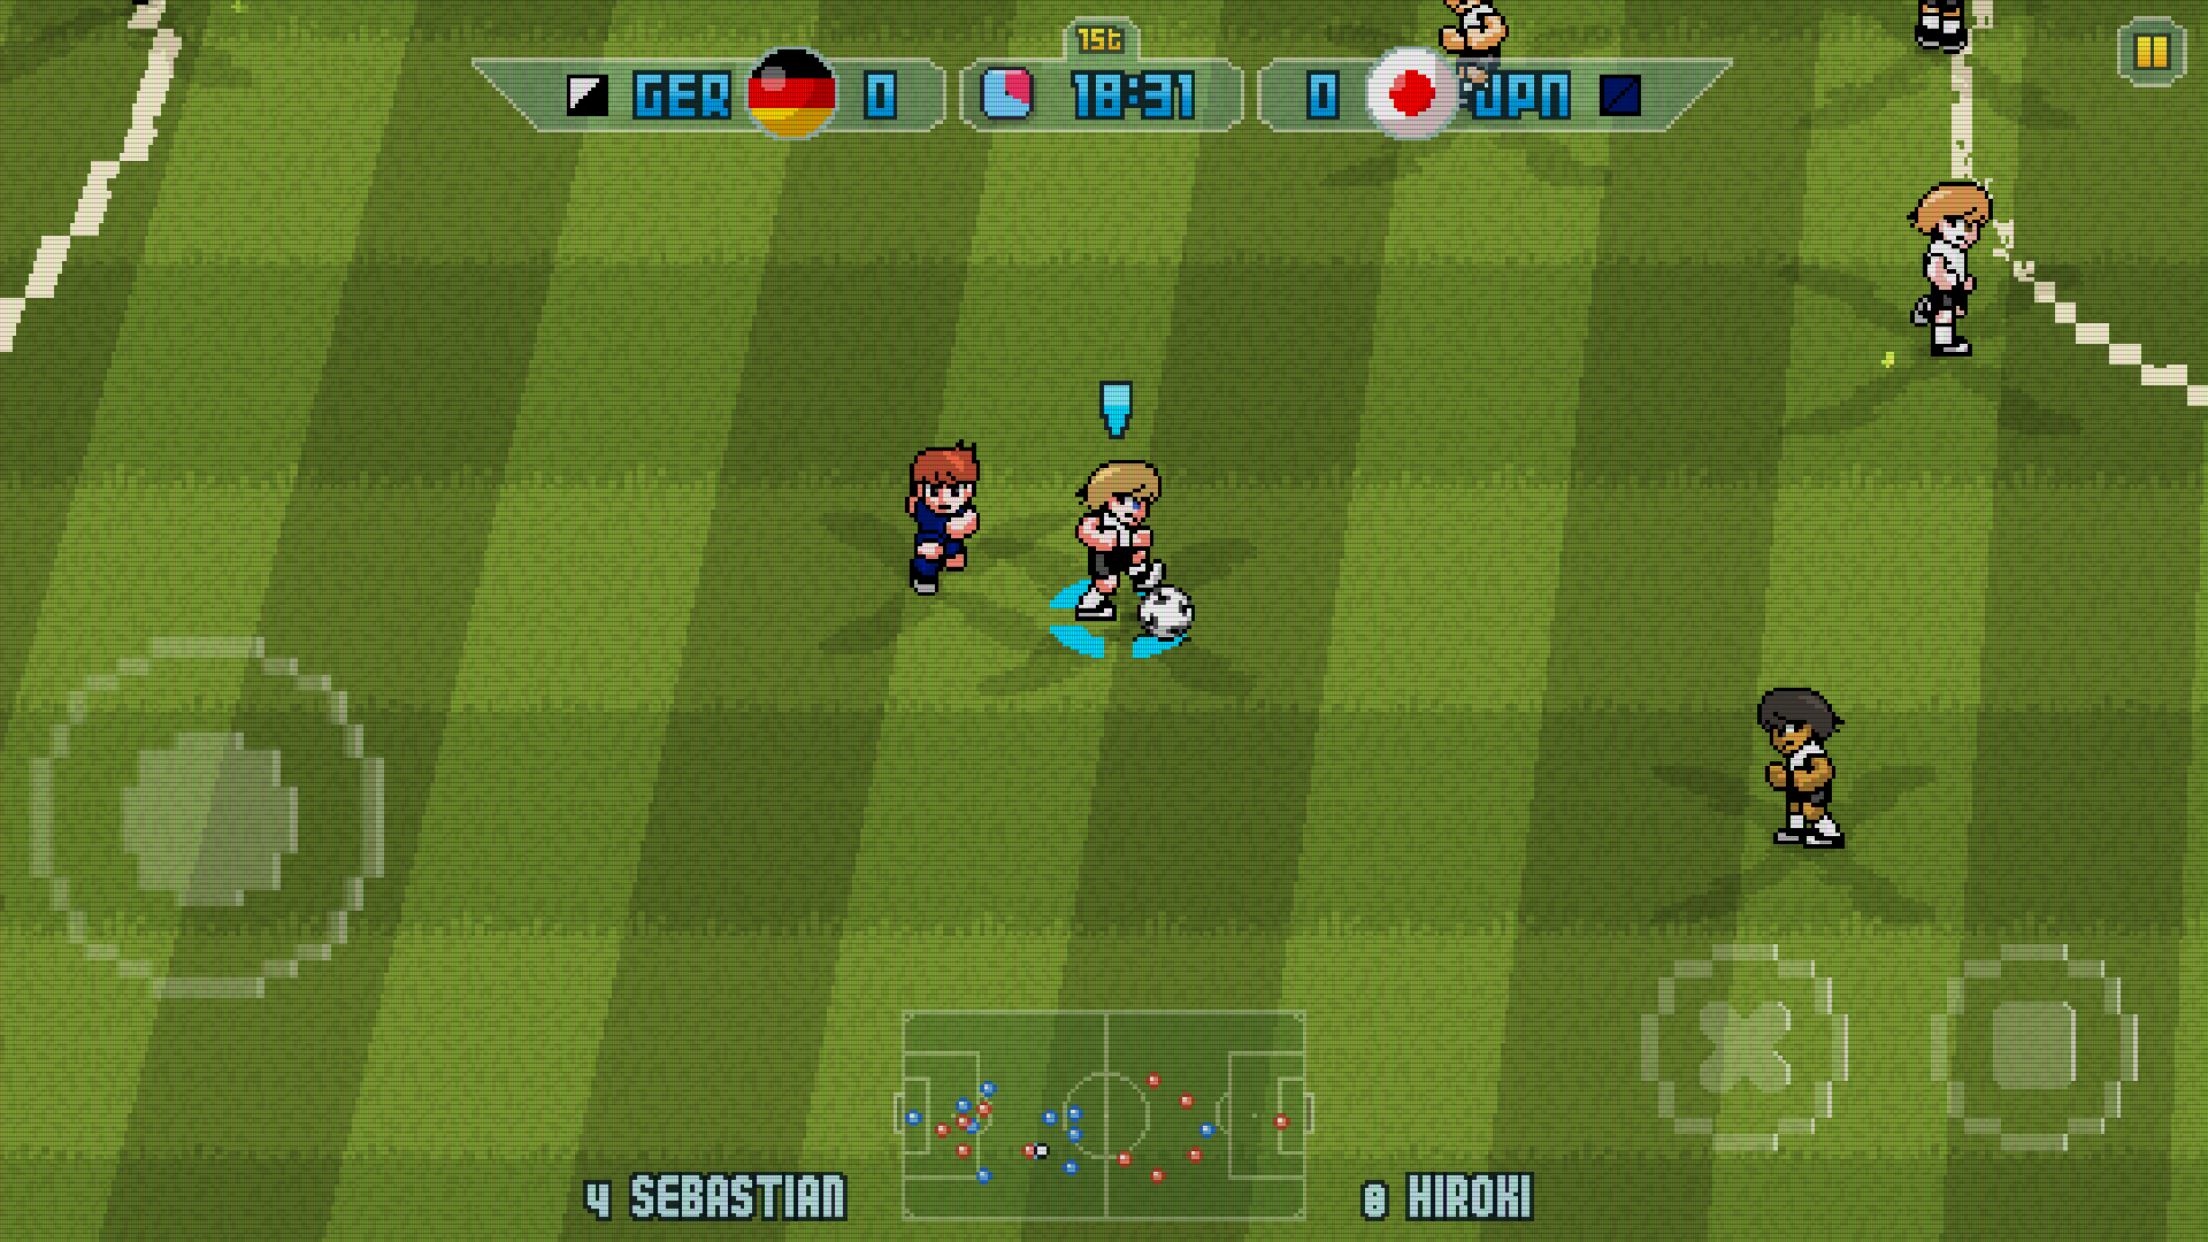 Pixel Cup Soccer 16 - The beautiful game done beautiful